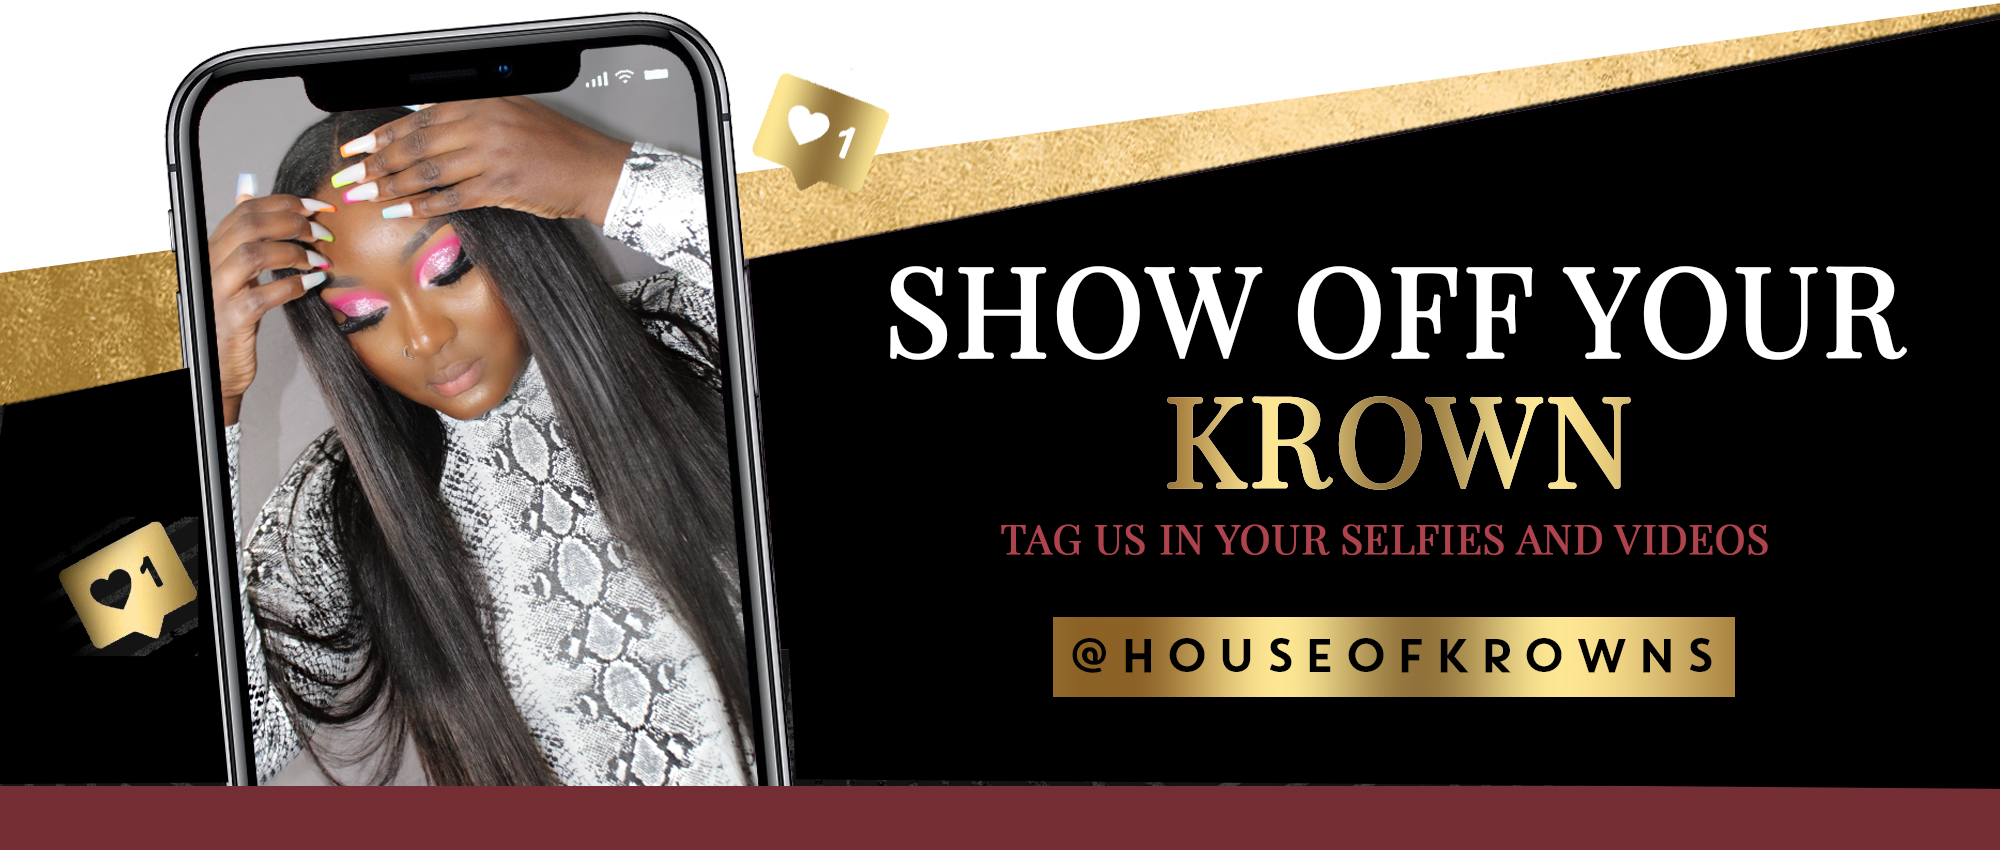 House of Krowns